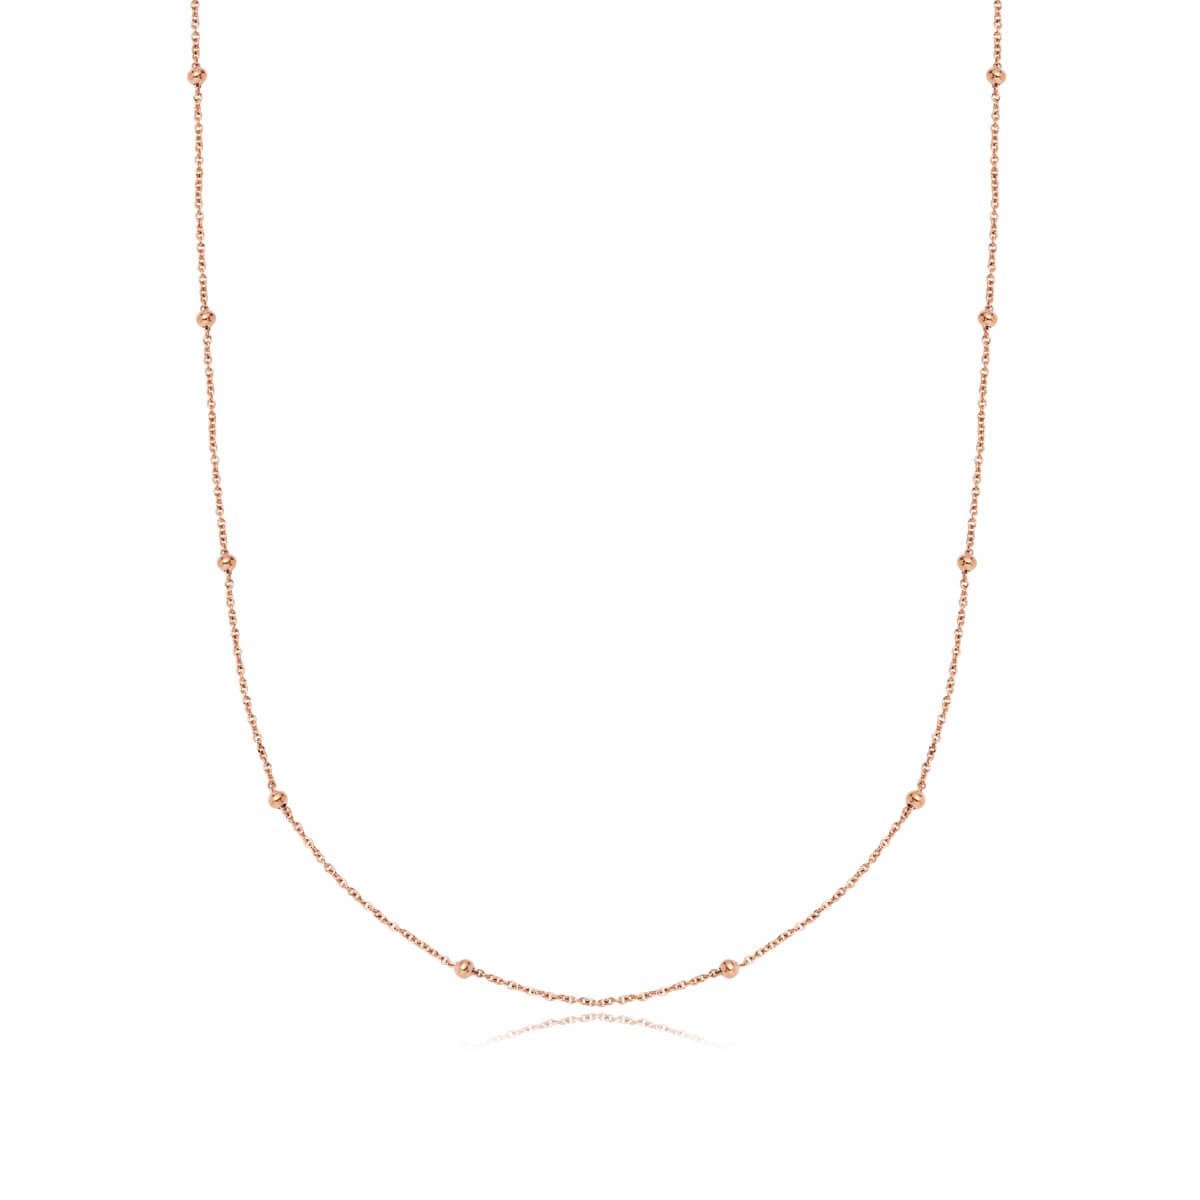 Selected Sphere Chain Necklace 20 in (Rose Gold)